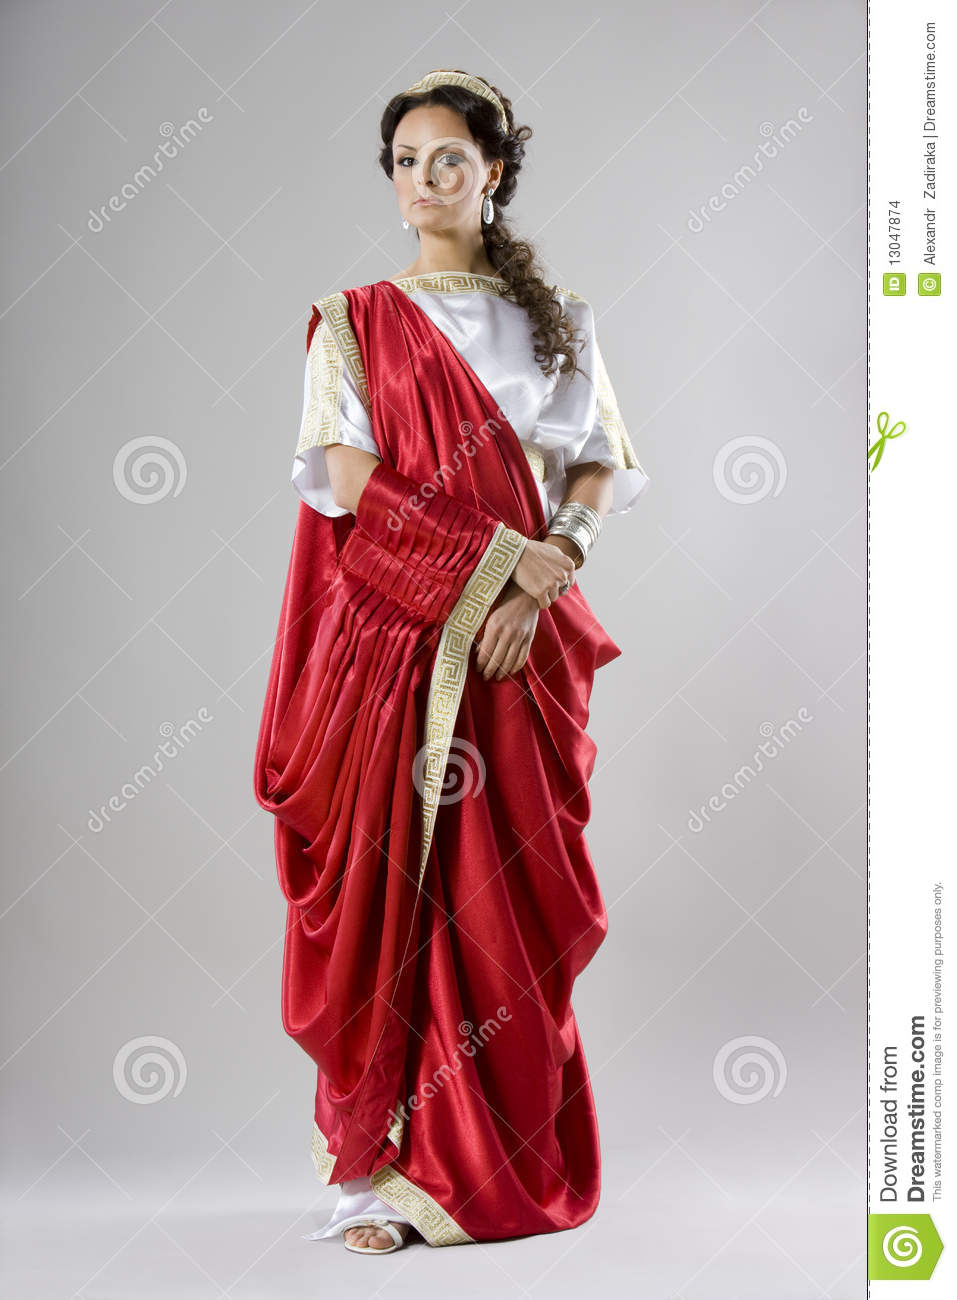 ancient roman clothing for women clothes stores